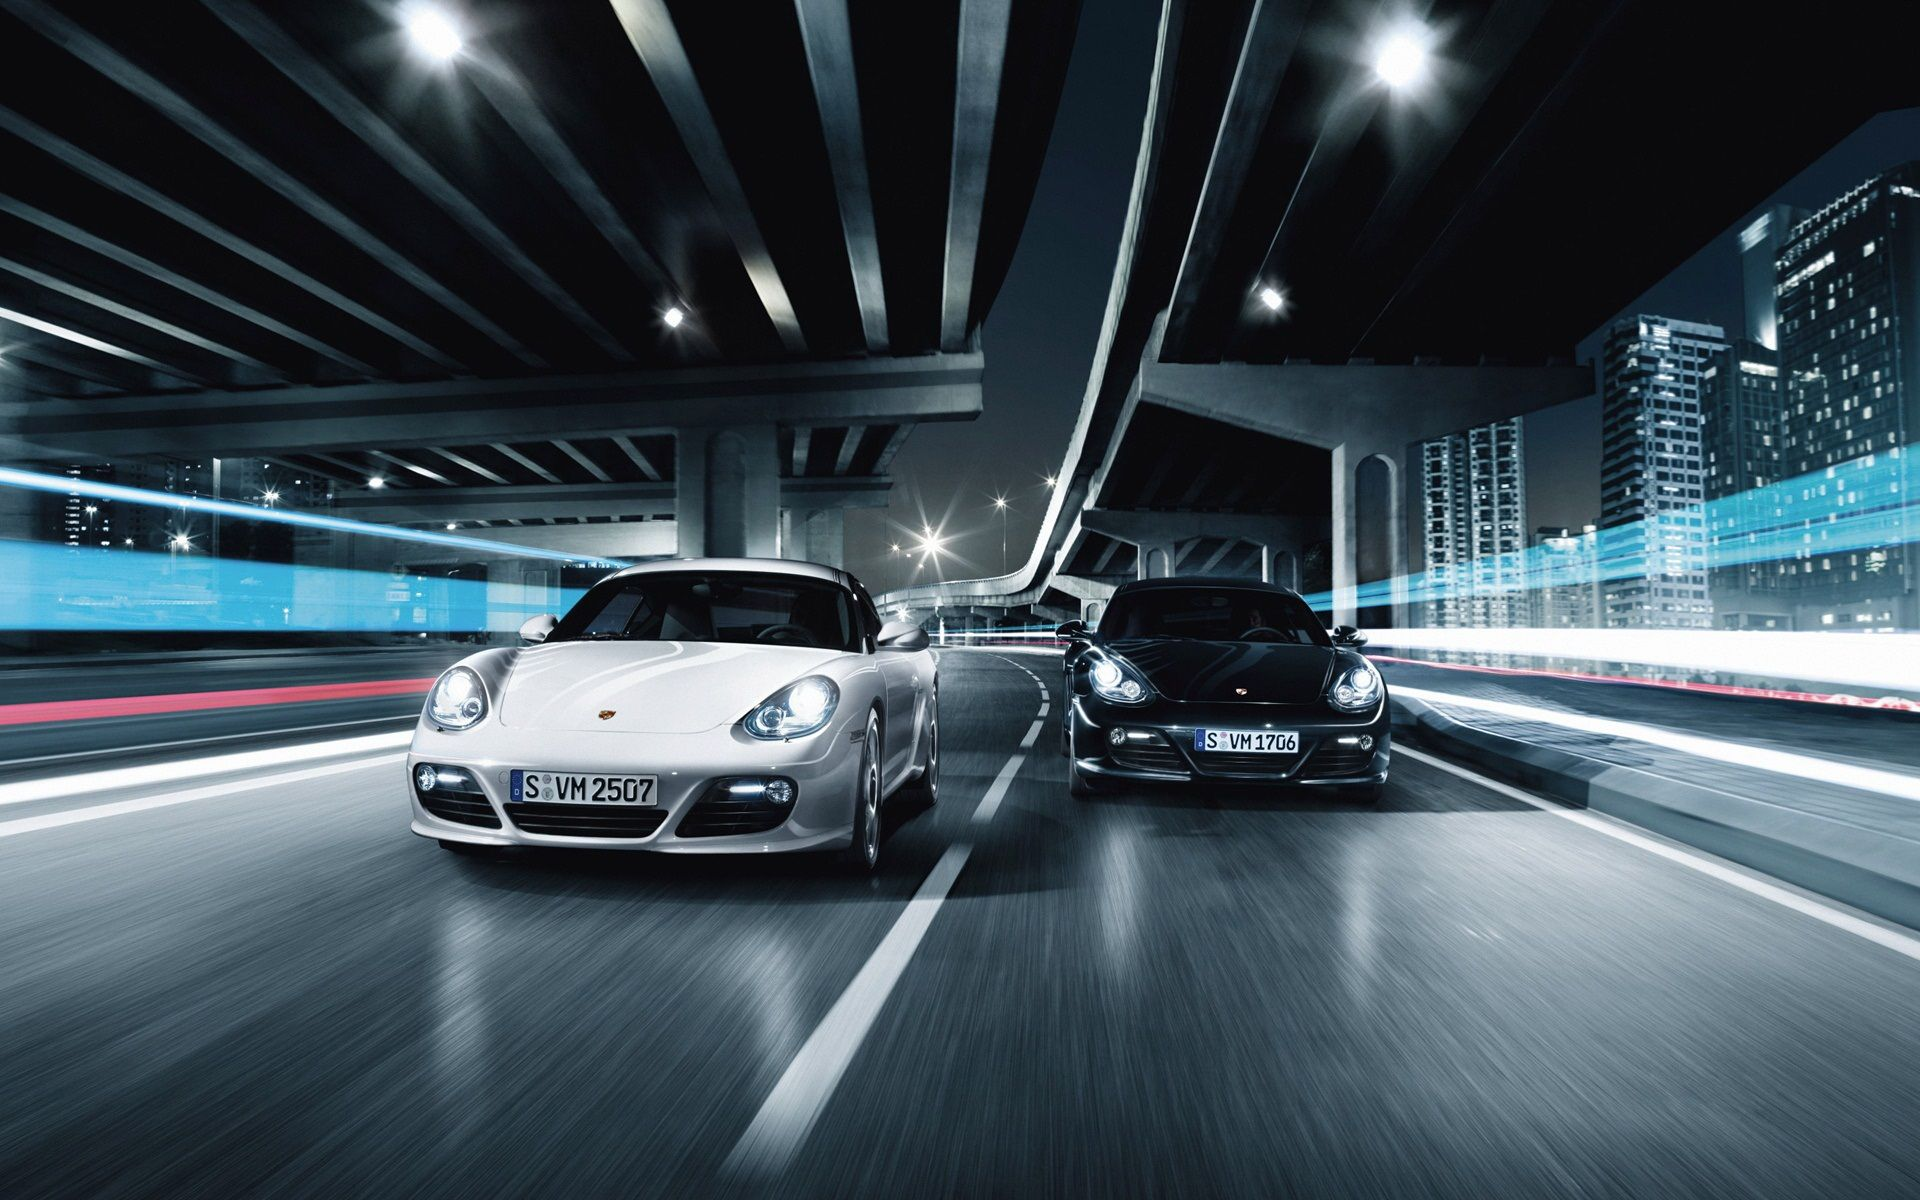 street racing | Racing Fever | Pinterest | Luxury cars and Cars